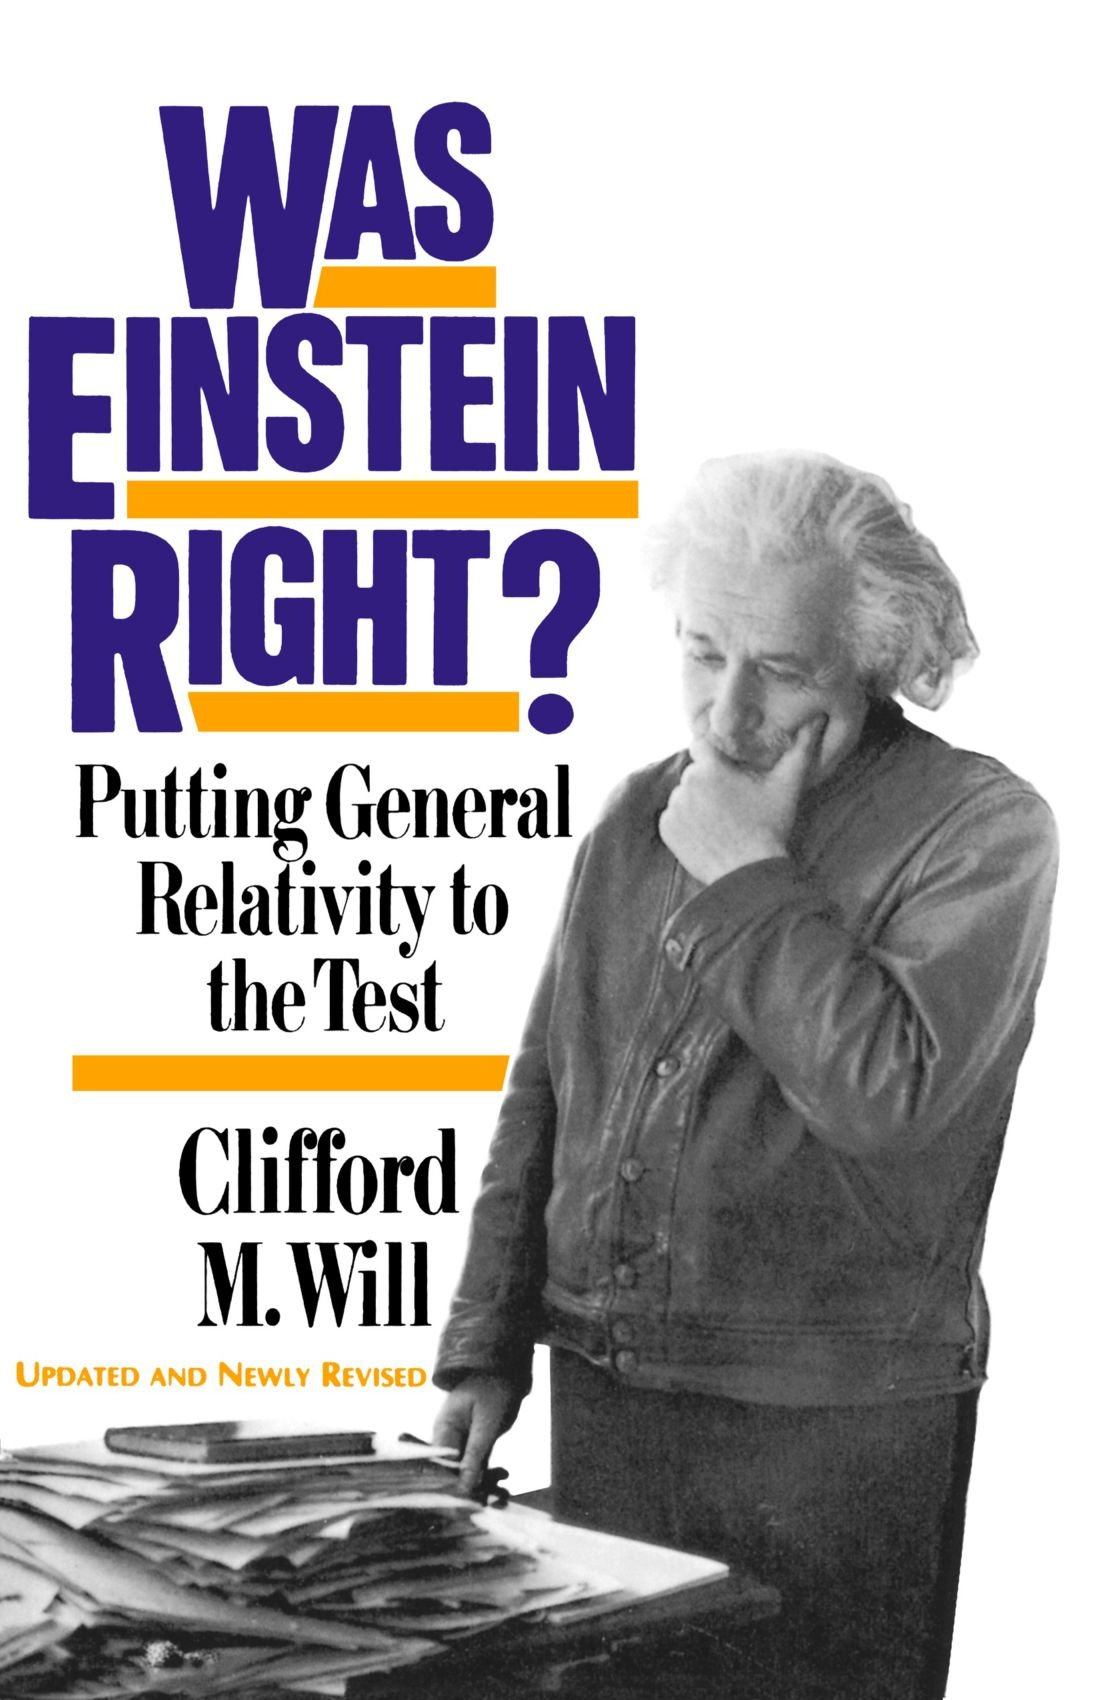 Was Einstein Right? 2nd Edition: Putting General Relativity To The Test